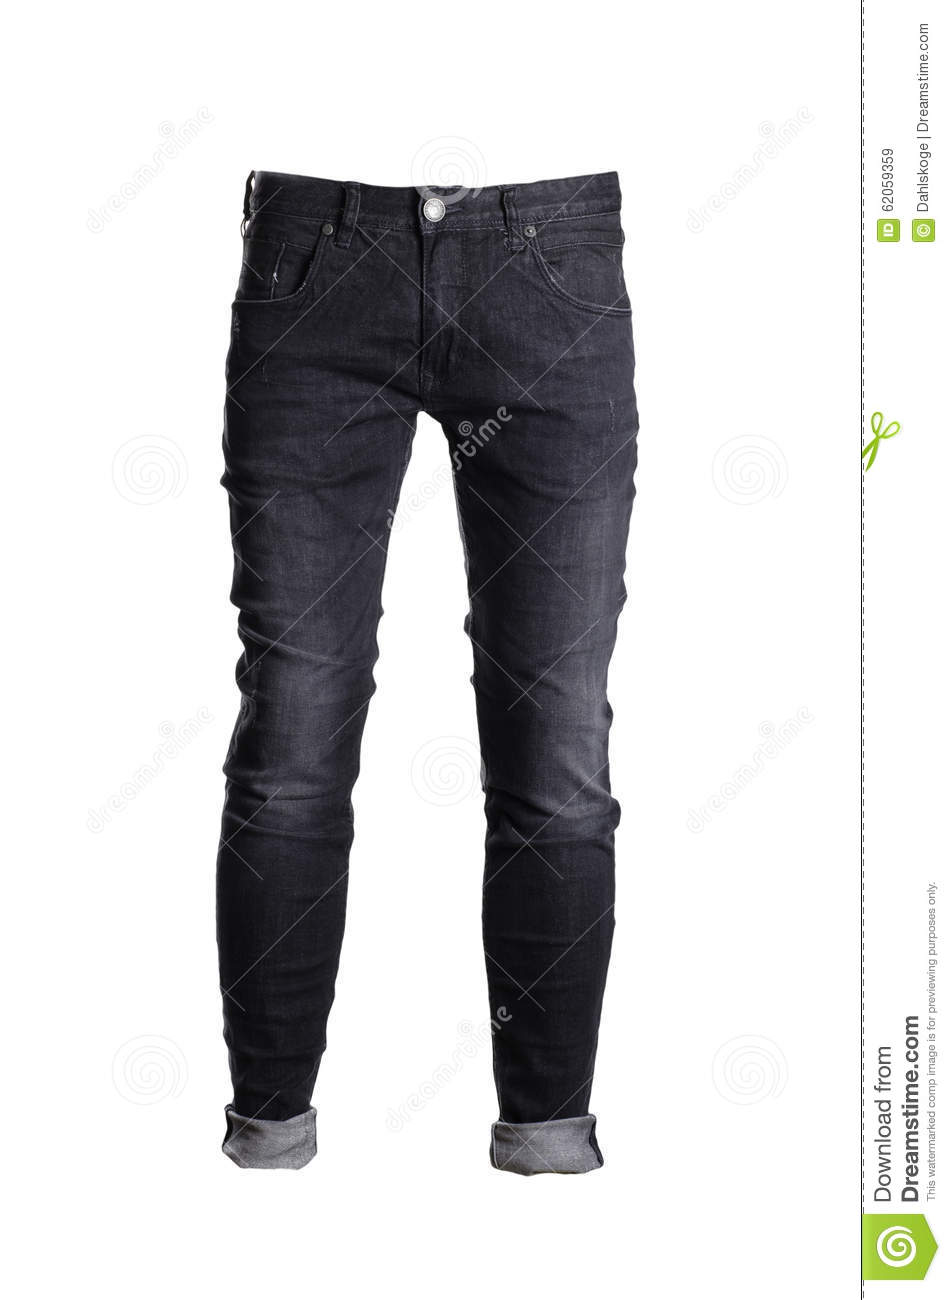 Black Jeans Texture Abstract Background  Black And White Tone Royalty-Free Stock Photo ...